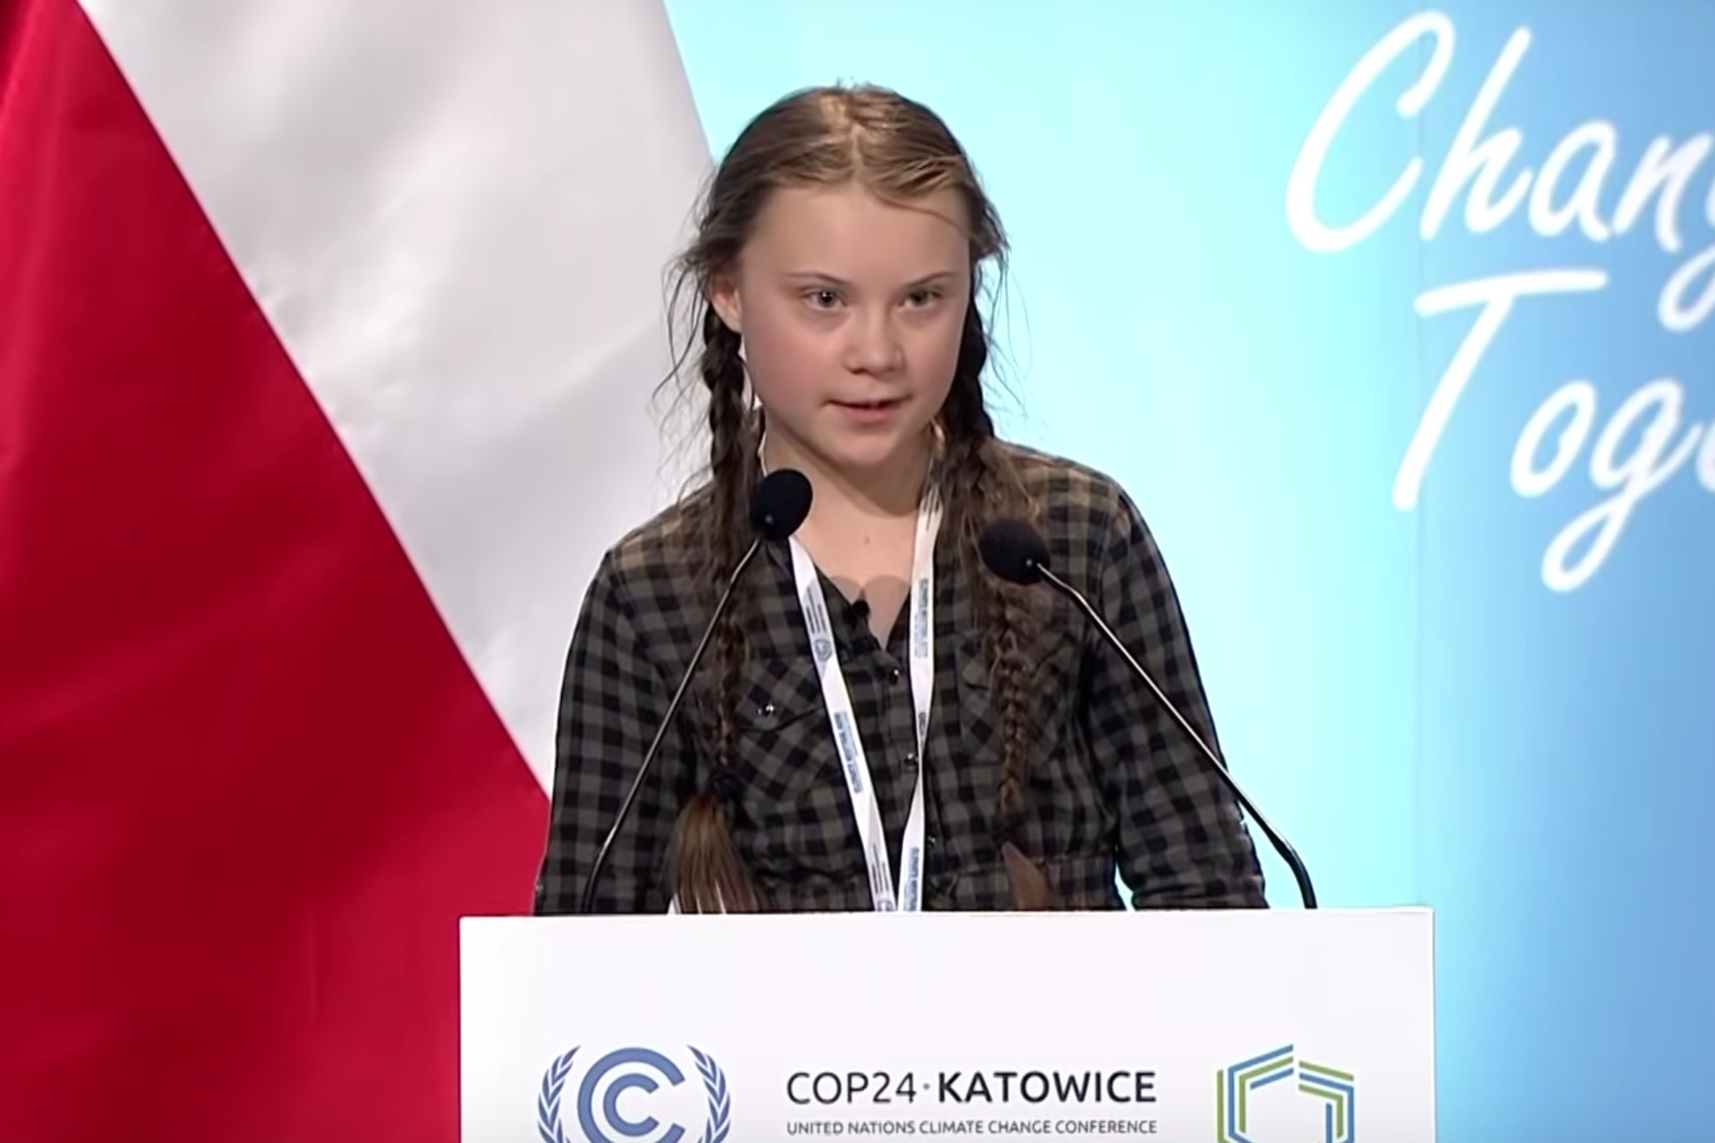 - Greta Thunberg Speech at UN Climate Change COP24 Conference